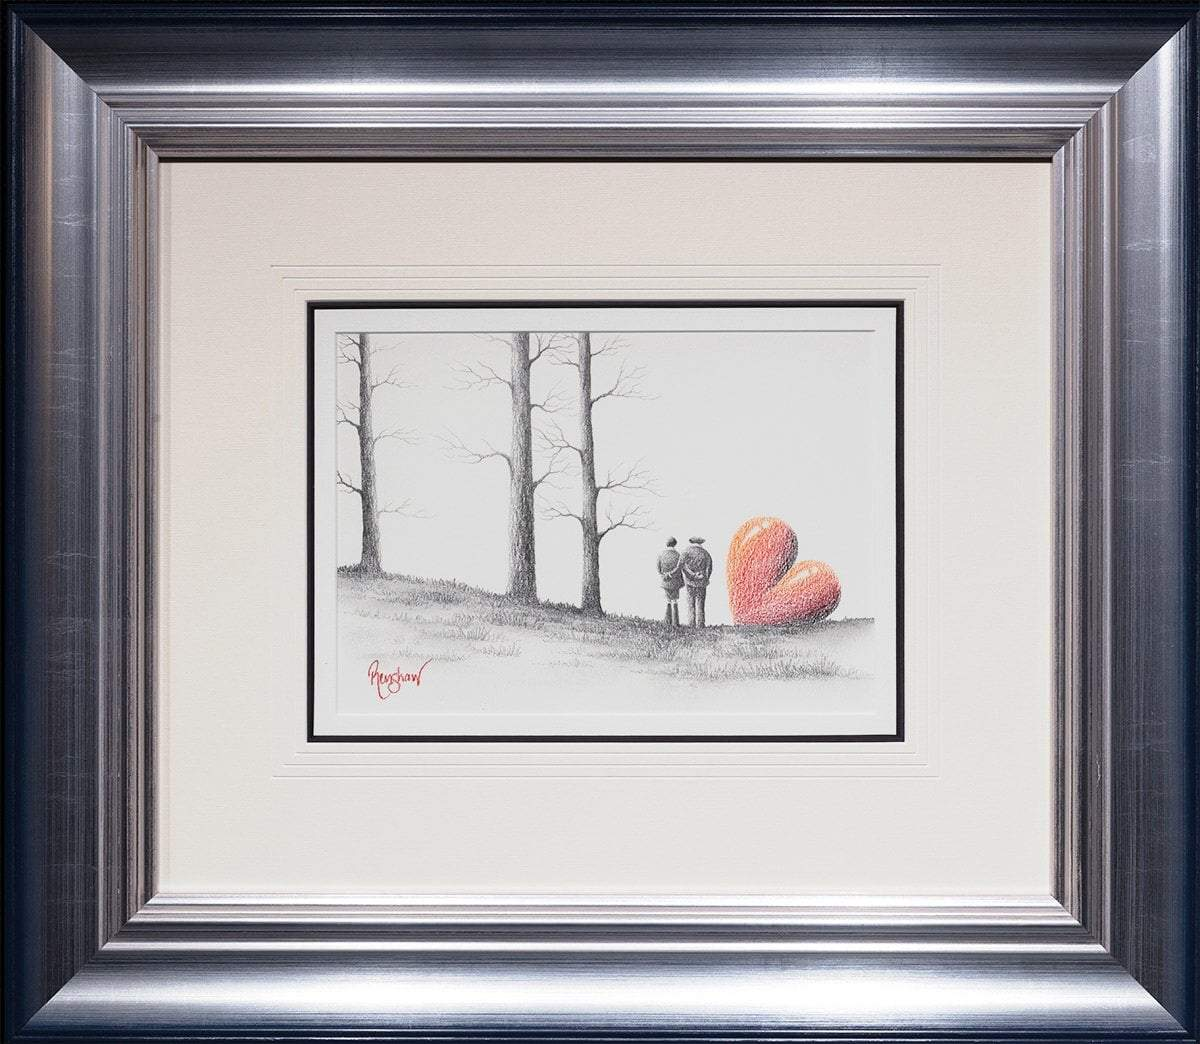 Just the Two of Us - Original Sketch David Renshaw Original